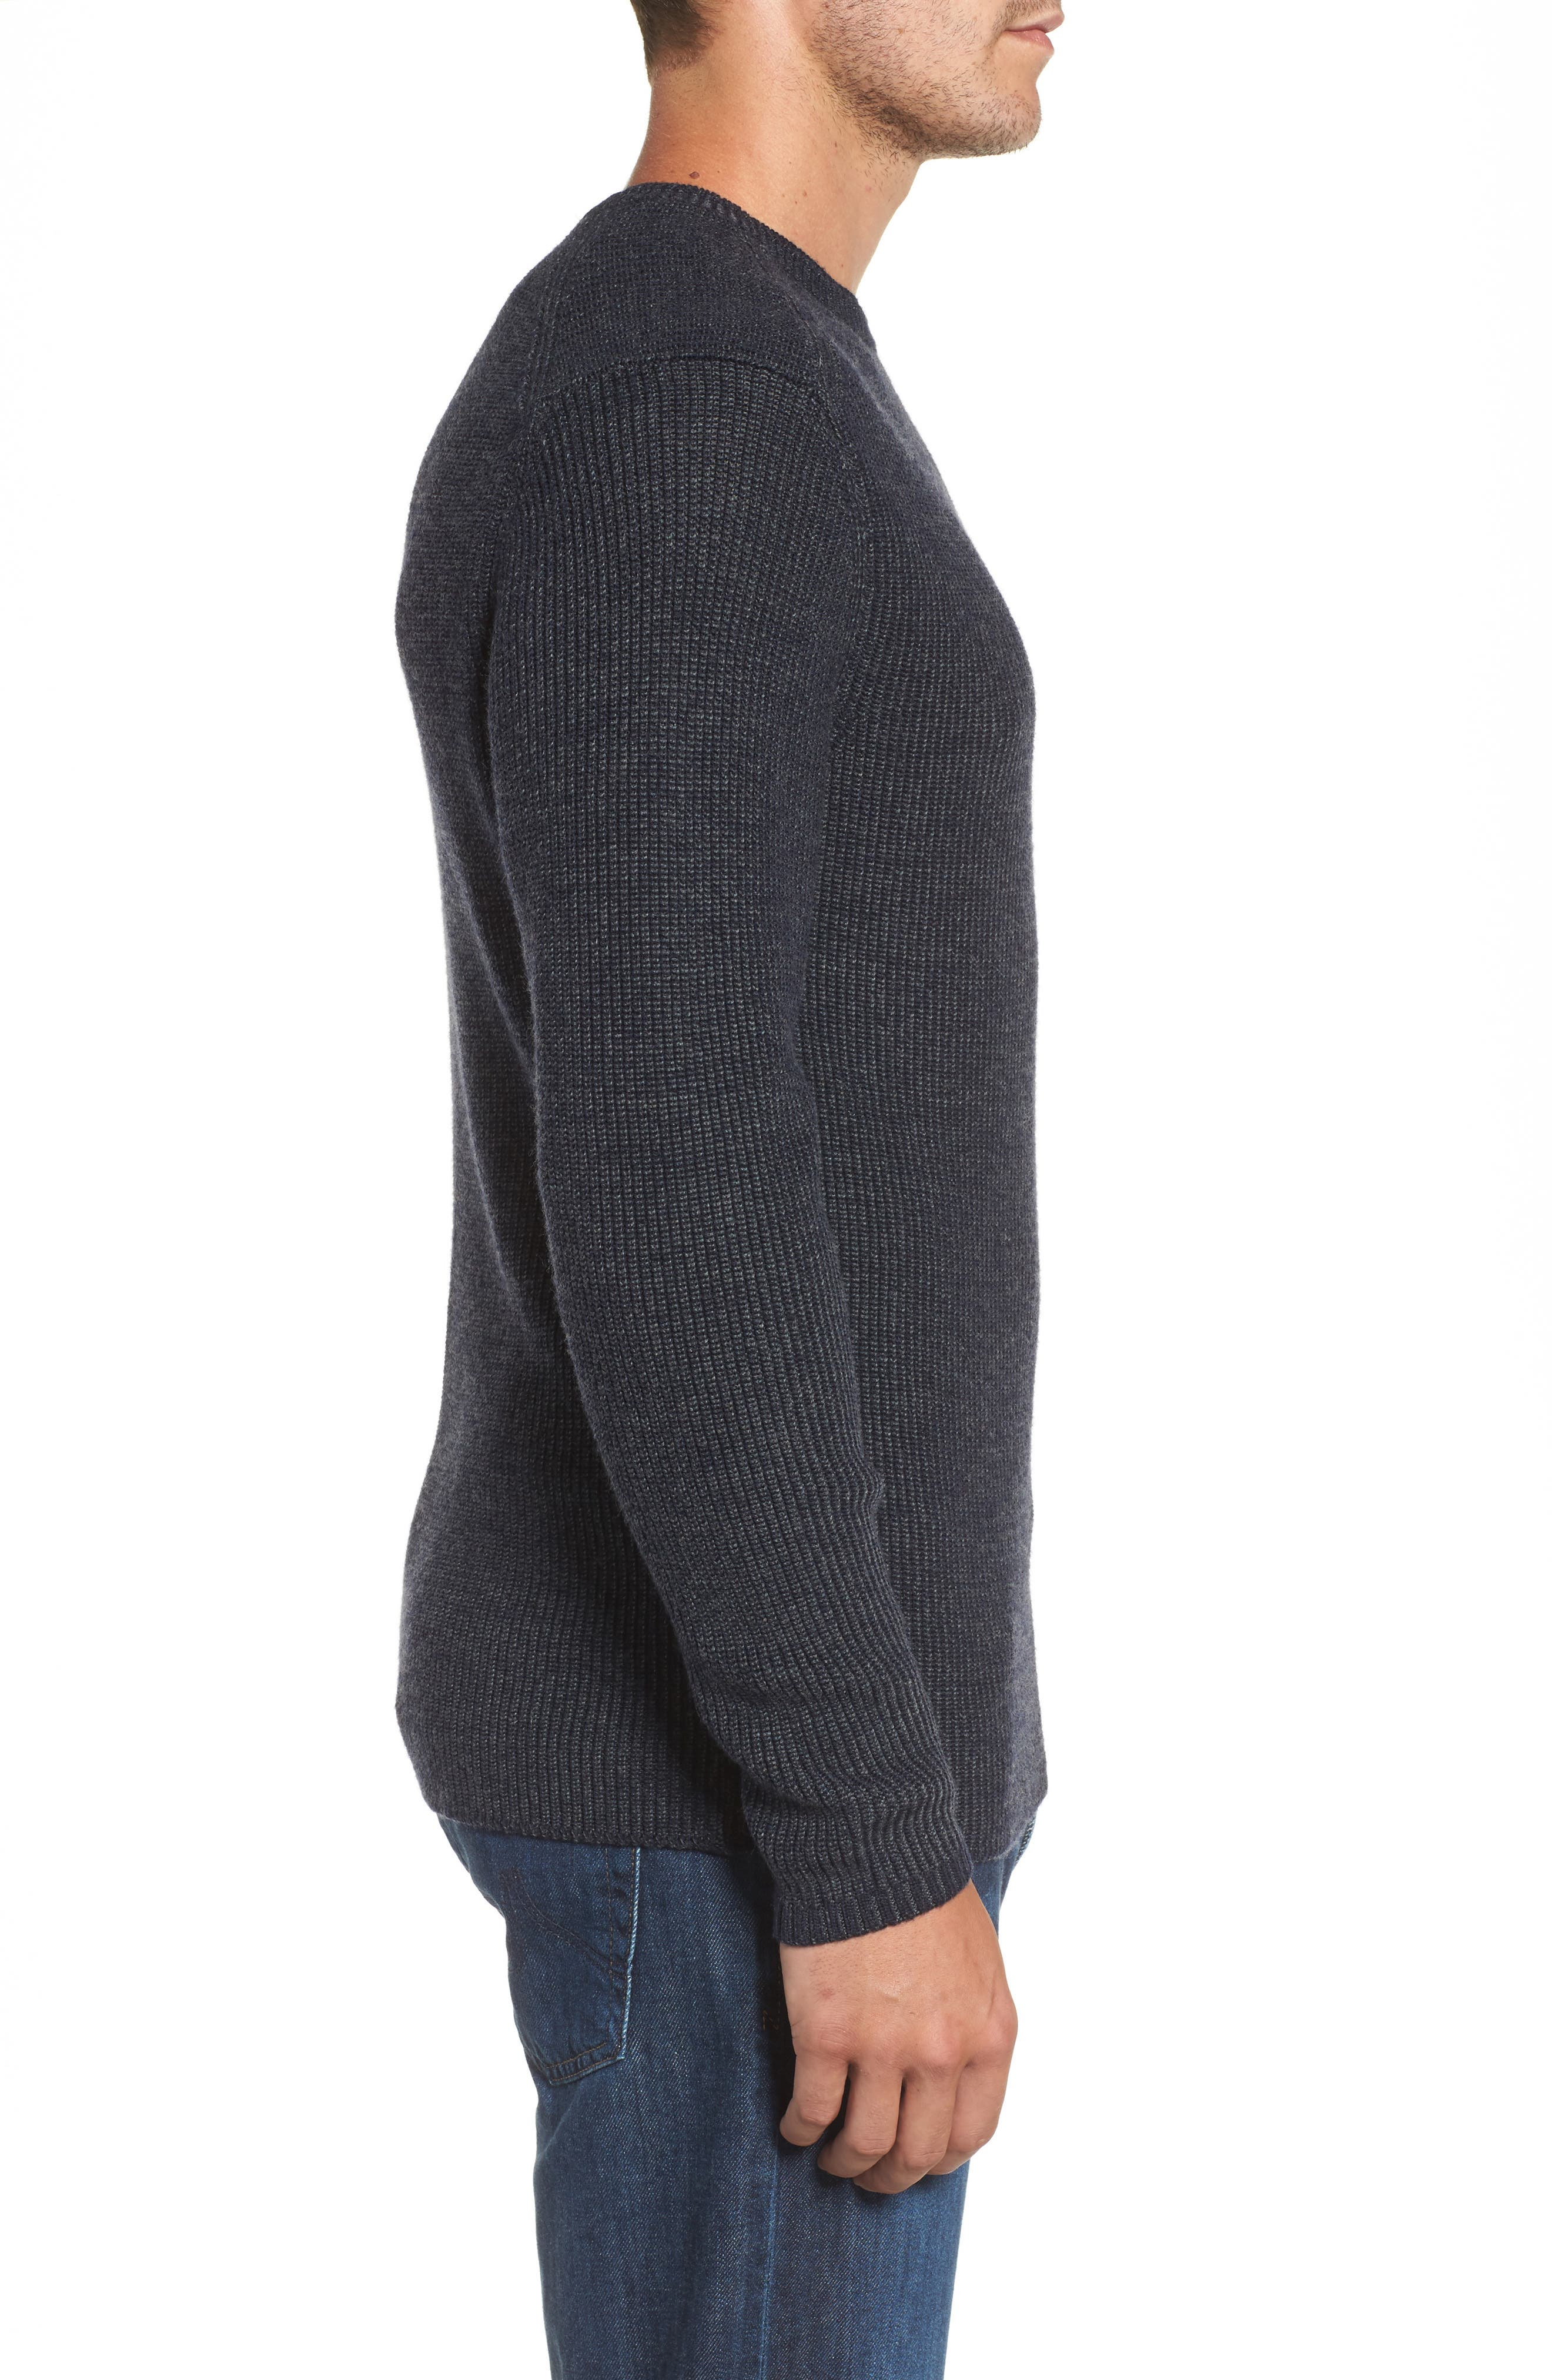 Whalers Bay Ribbed Merino Wool Sweater,                             Alternate thumbnail 3, color,                             Night